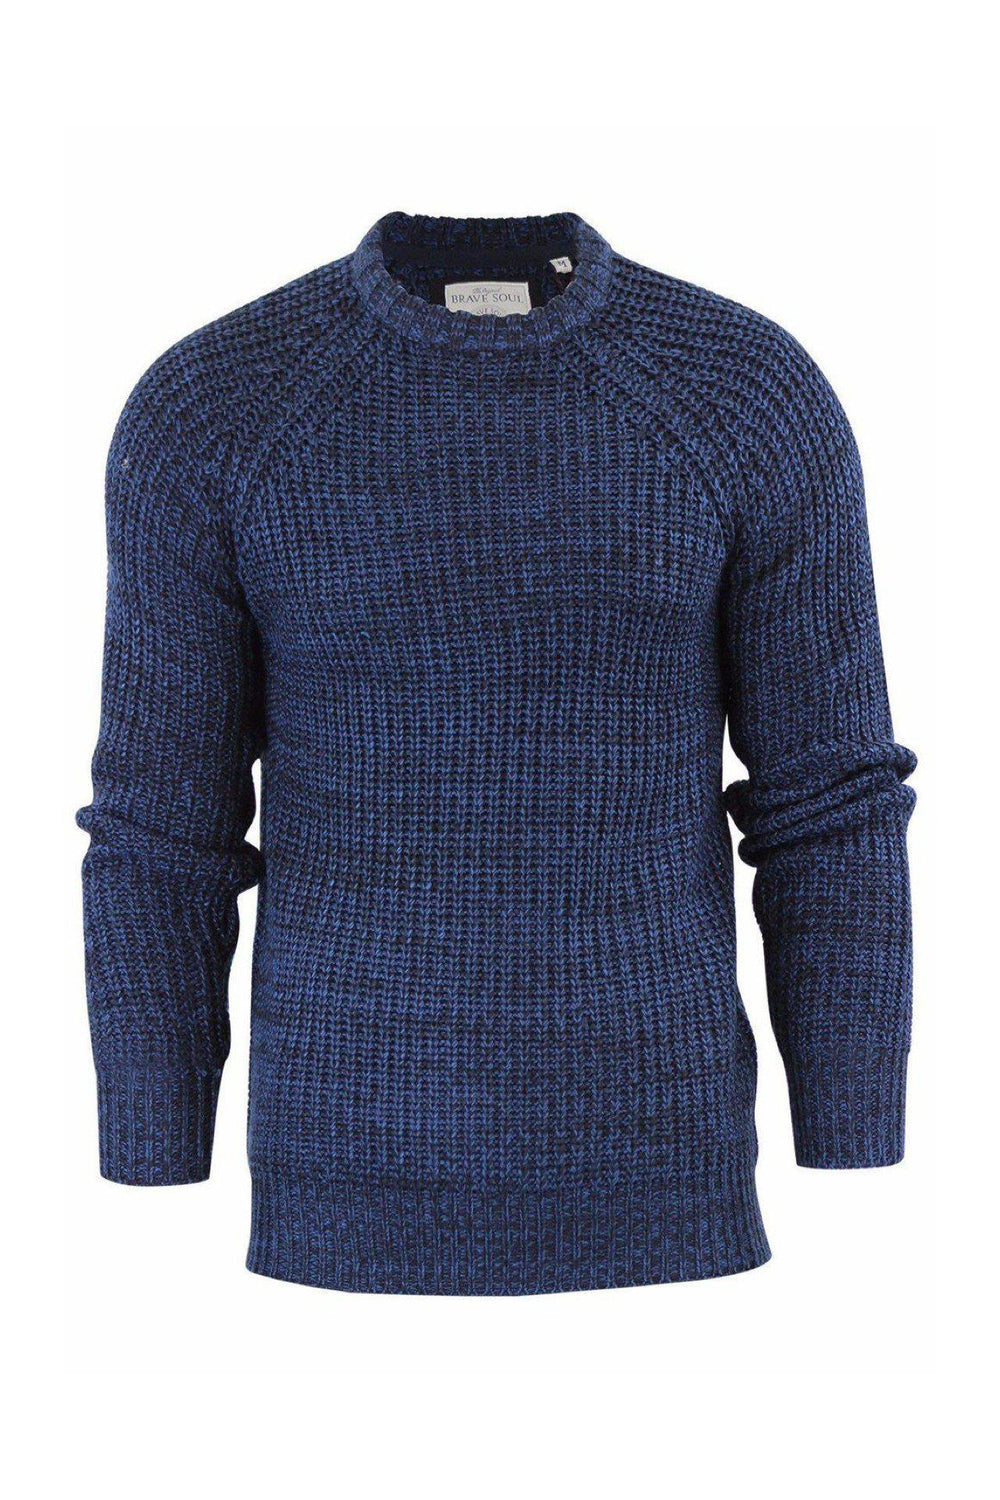 Knitwear - Fisherman Knit Jumper Navy Chcl